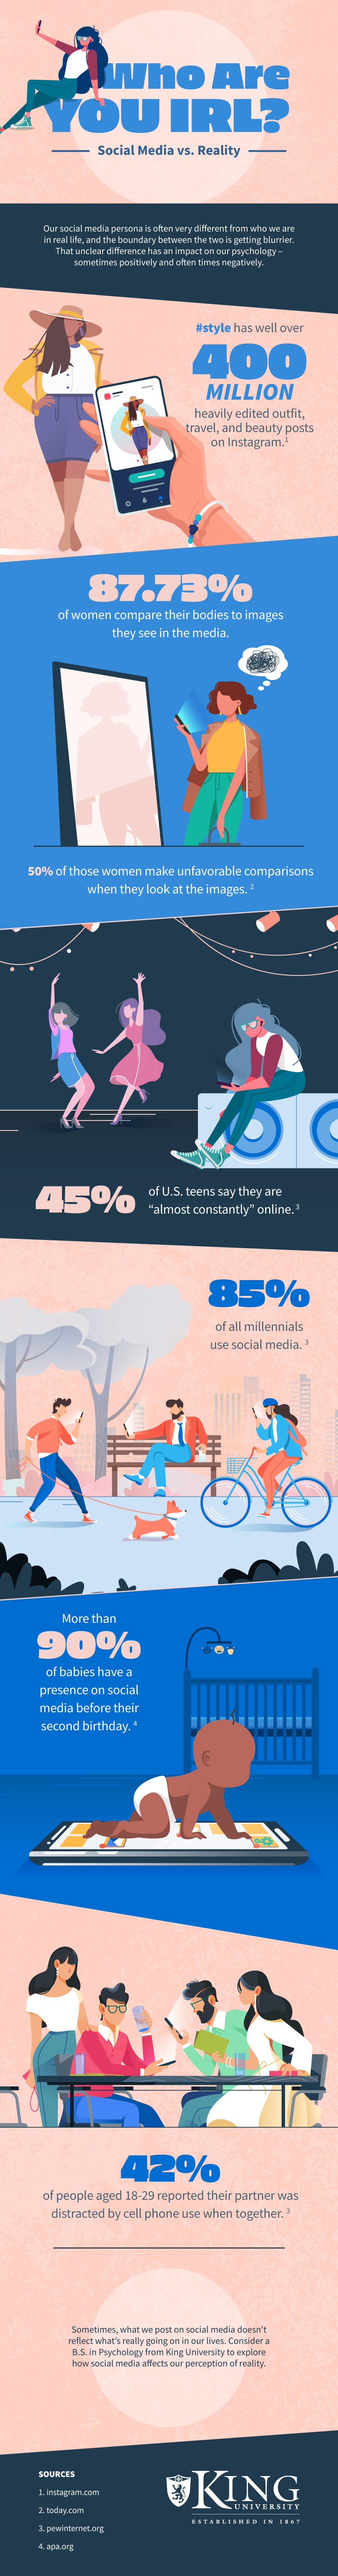 Infographic lists social media usage trends